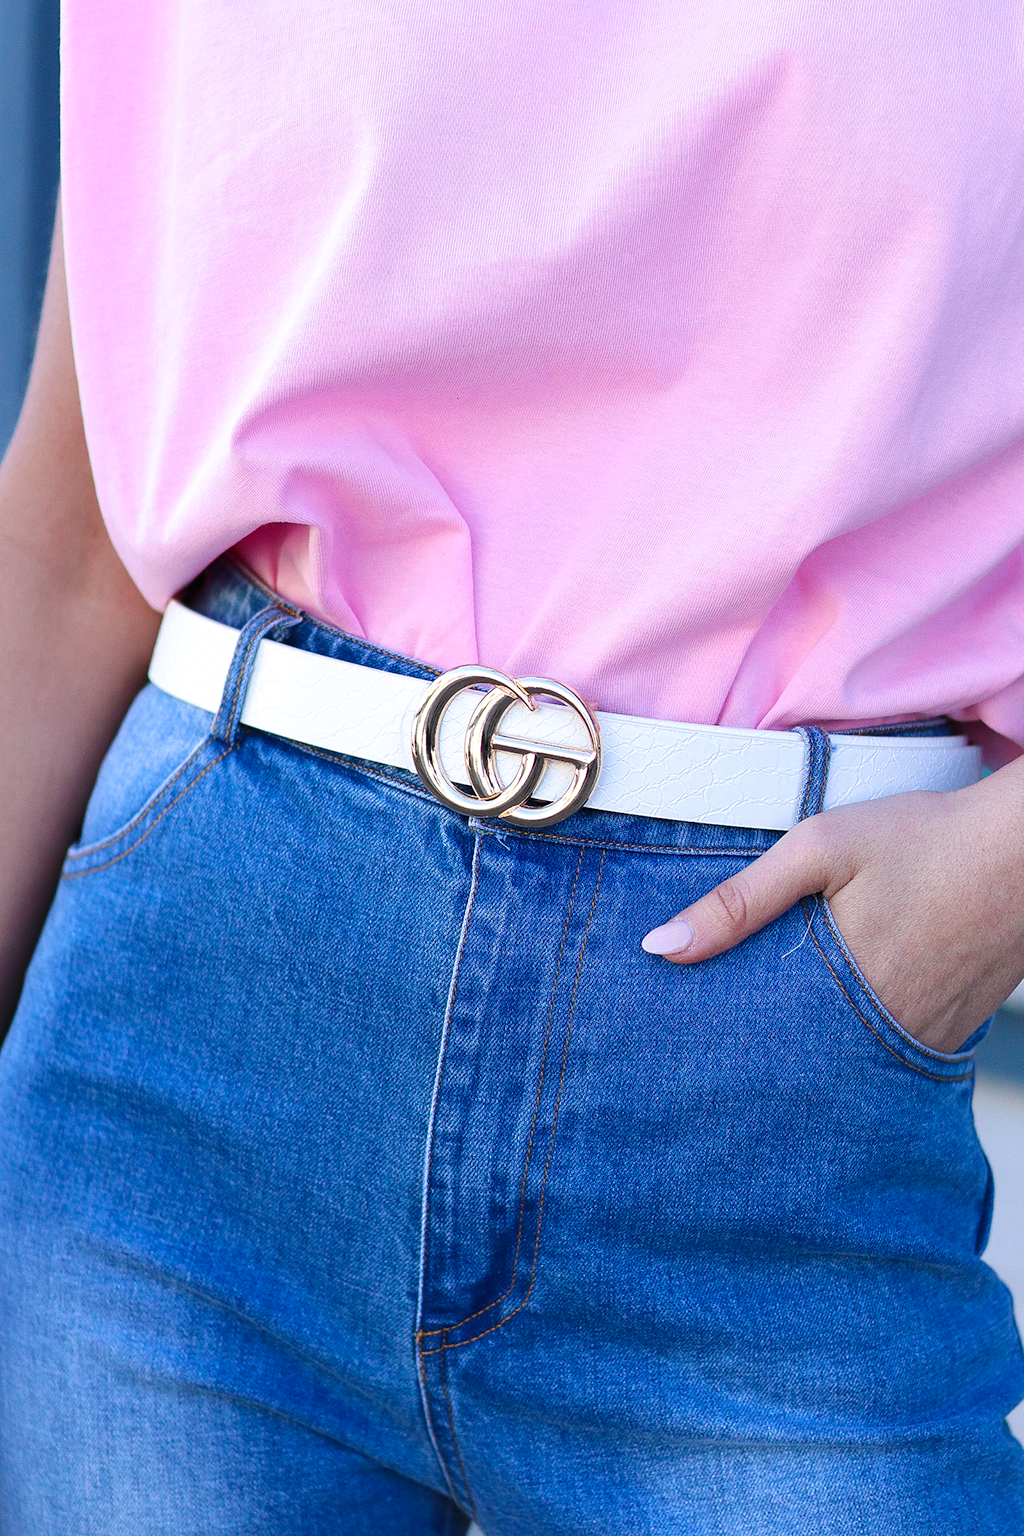 BUCKLE UP AND MAKE ALL YOUR OUTFITS LOOK LIKE A NEW ONE. THIS DOUBLE G BELT IS DESIGNER INSPIRED AND WORKS WELL FOR DRESSES AND JEANS. THE WHITE CROC MATERIAL IS PERFECT FOR WINTER AND SPRING OUTFITS.